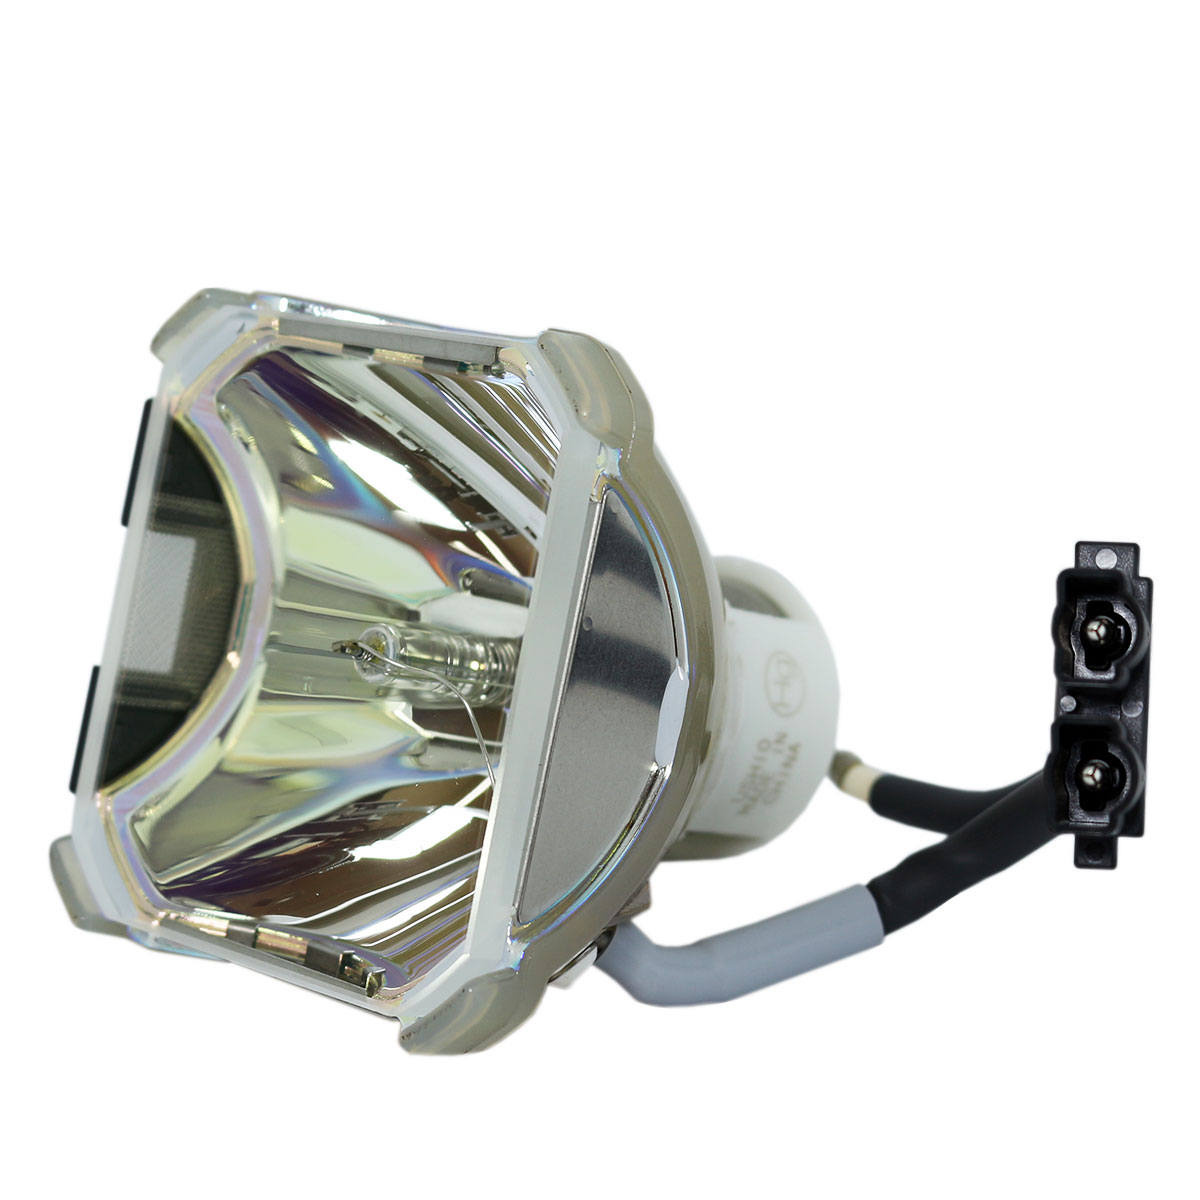 Compatible Bulb DT00471 DT-00471 for HITACHI CP-S420 CP-X430 CP-X430W MCX2500 Projector Lamp Bulb without housing compatible projector lamp for hitachi dt01151 cp rx79 cp rx82 cp rx93 ed x26